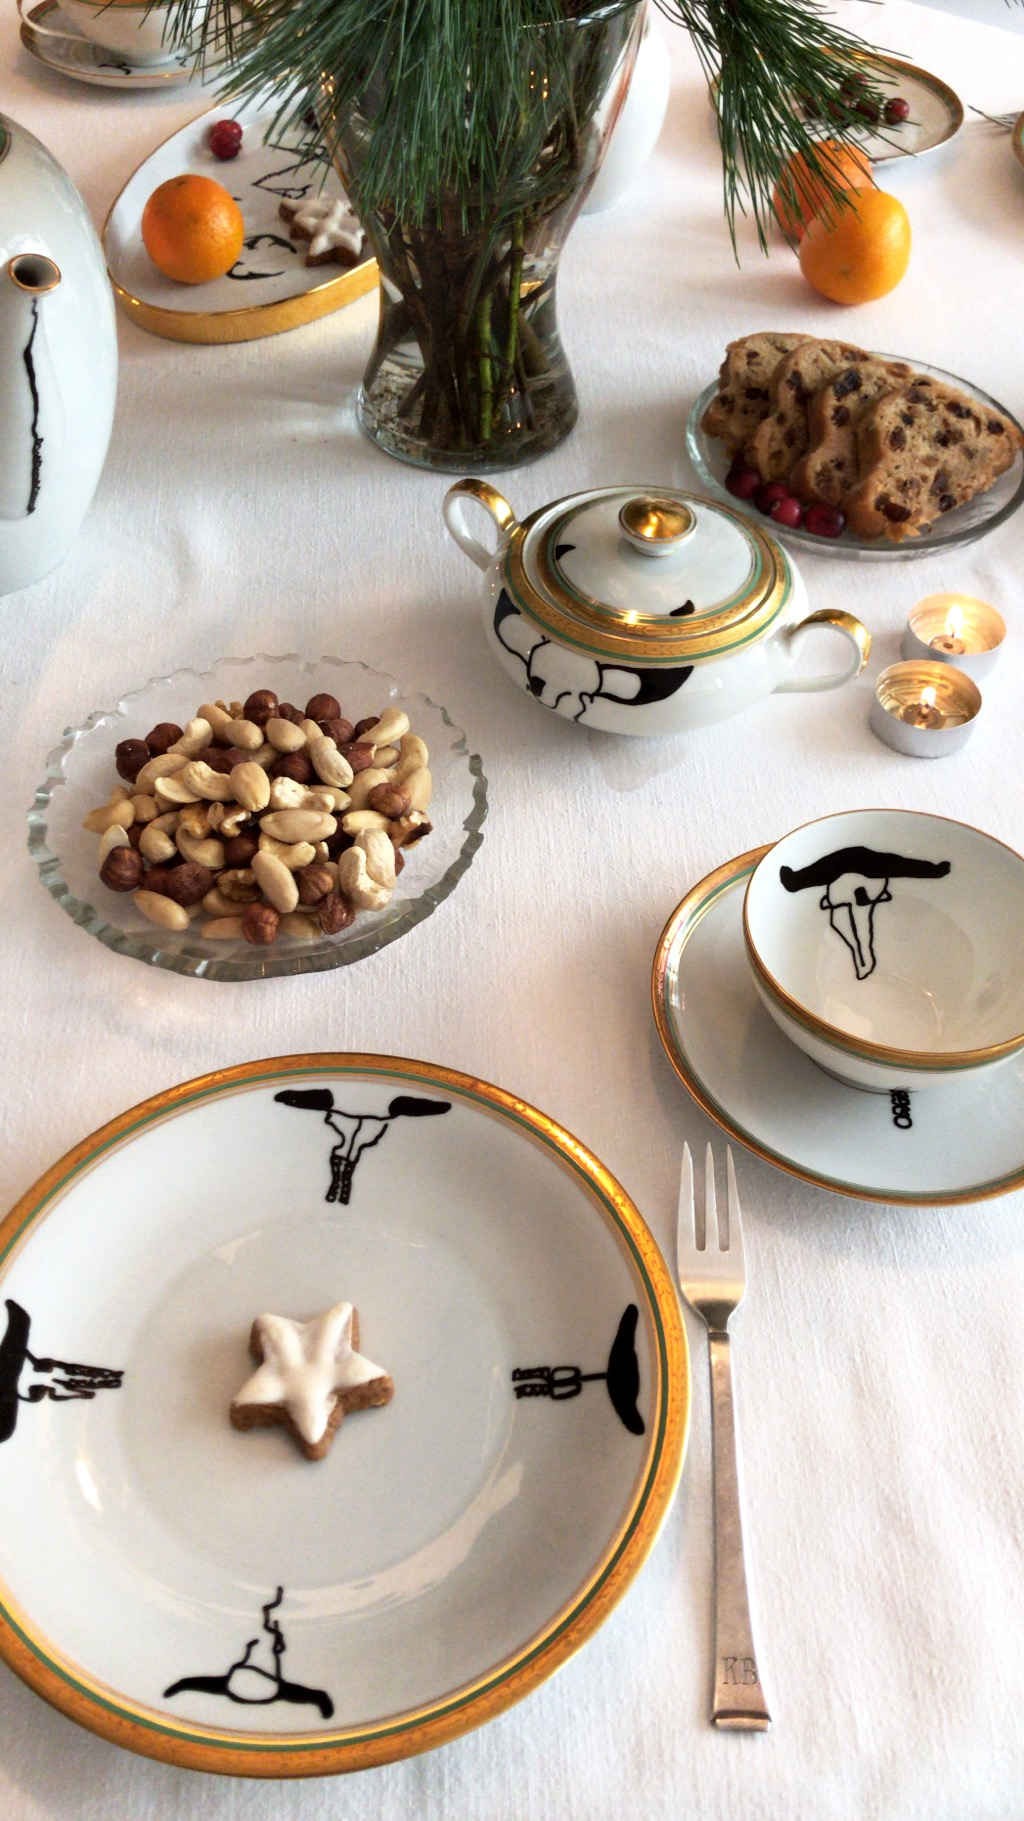 The table is set. It's tea time!